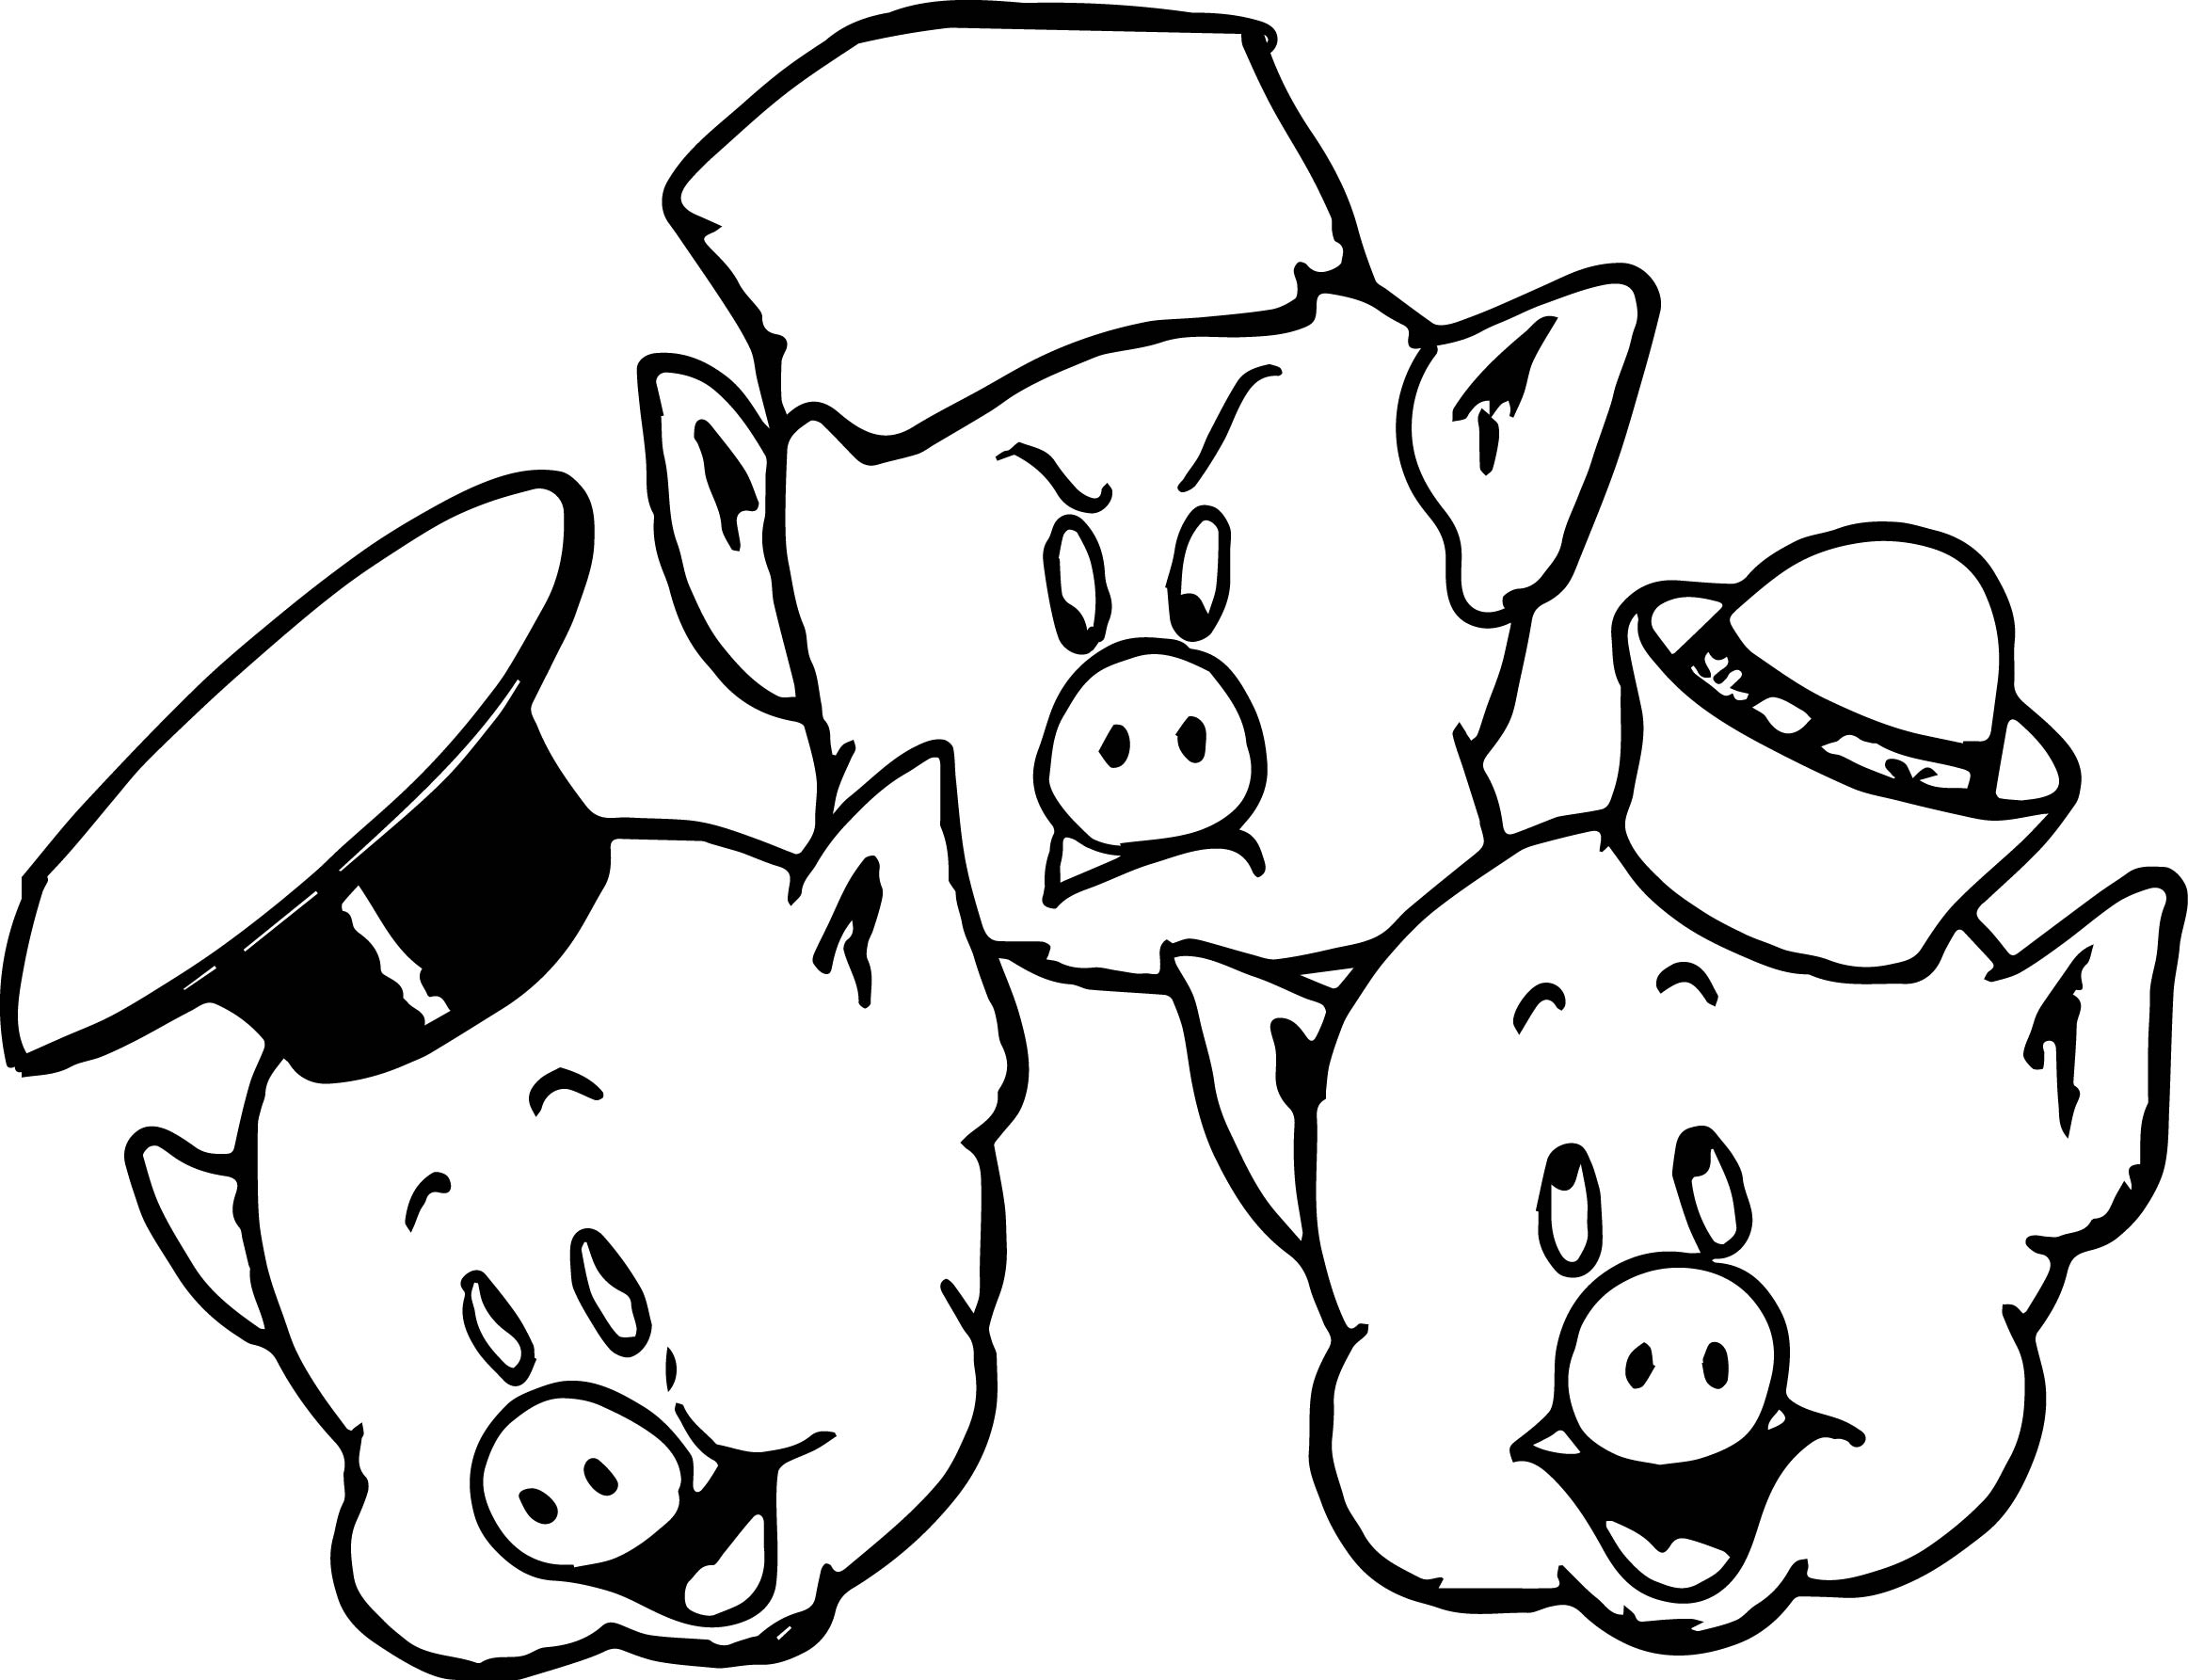 2325x1785 Cute Pig Coloring Pages Page Image Clipart Images